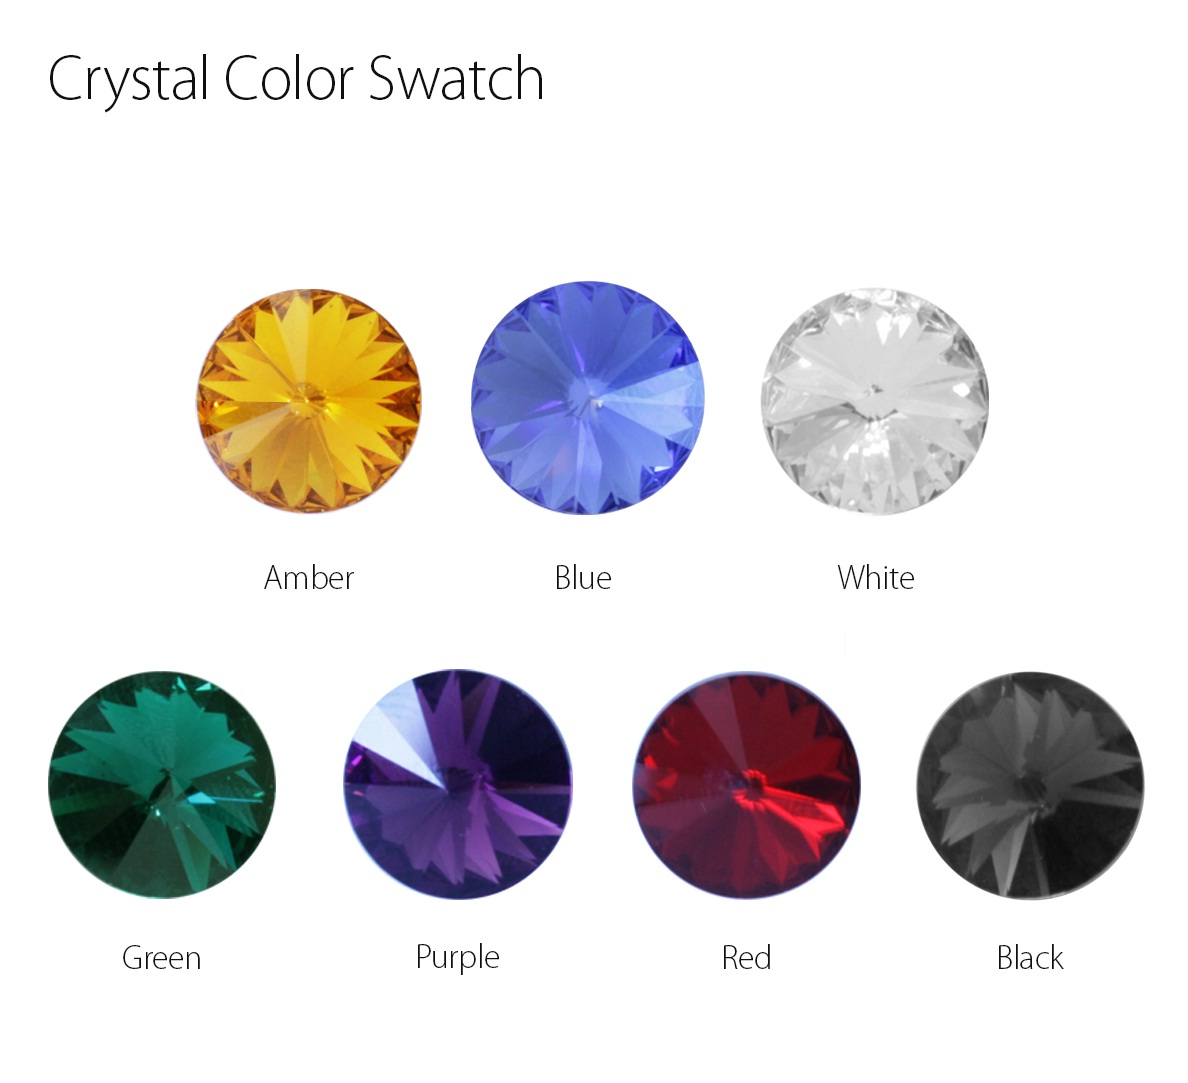 Crystal Color Swatch for Spot Light Handles with Crystal on Top